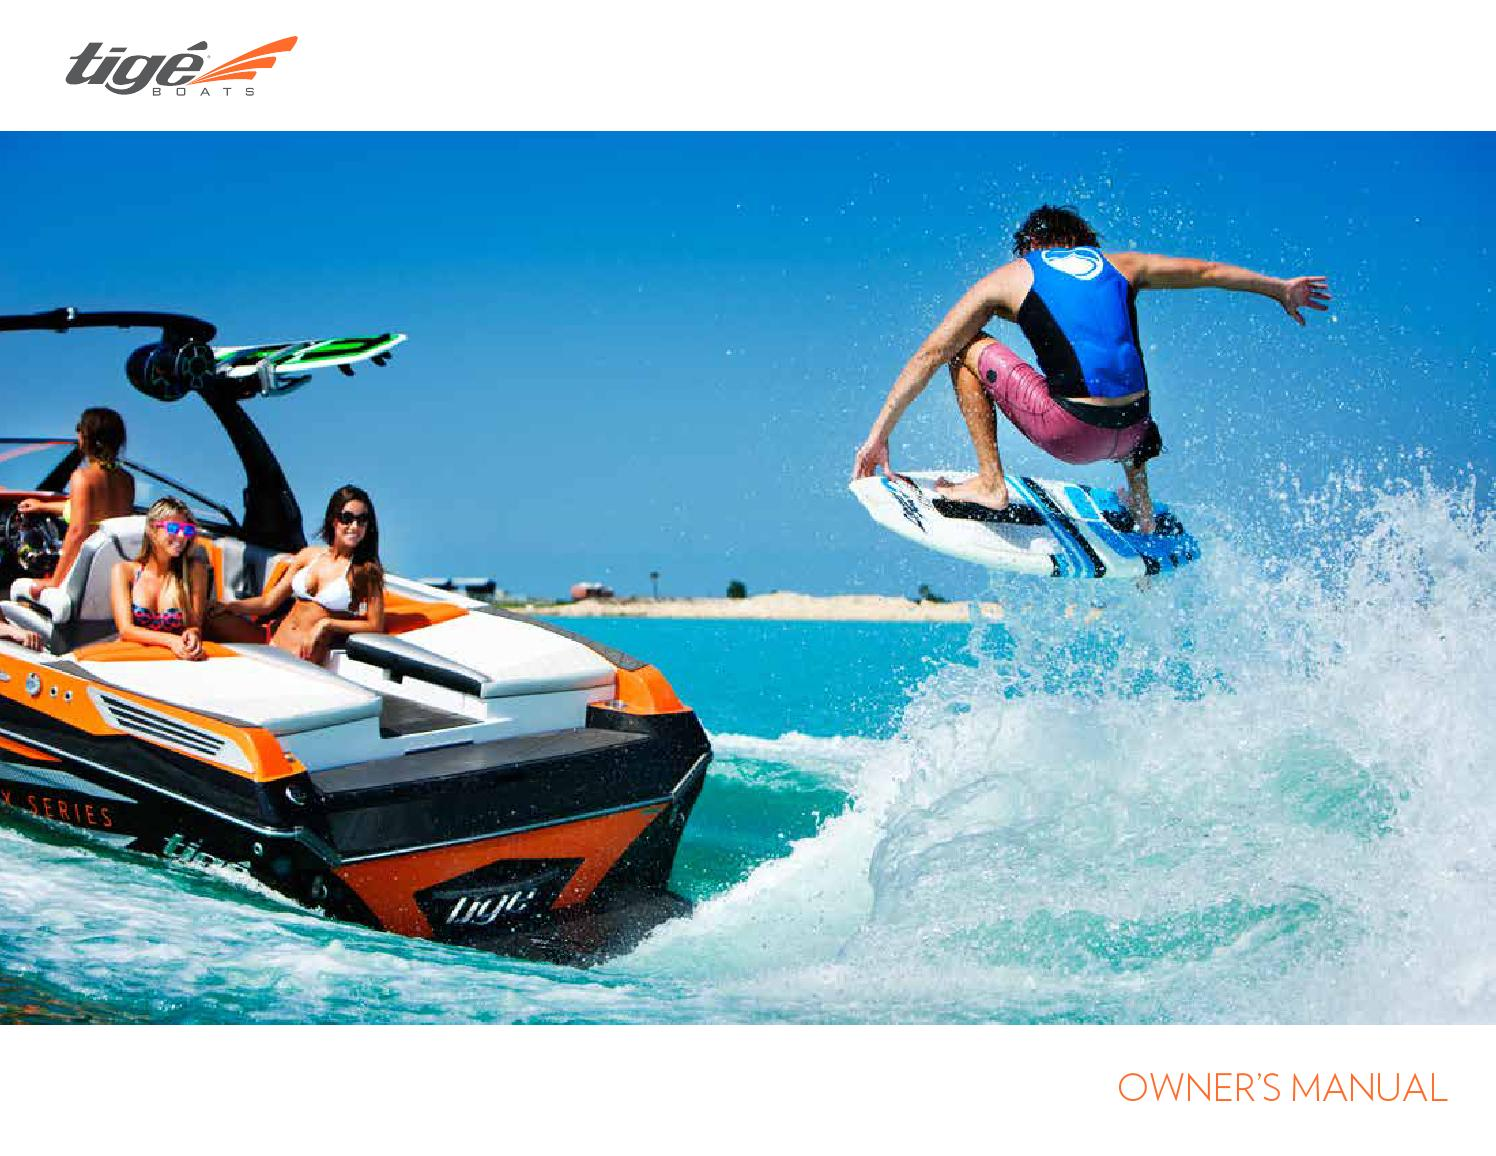 2016 Tige Owners Manual by Tige Boats - issuu